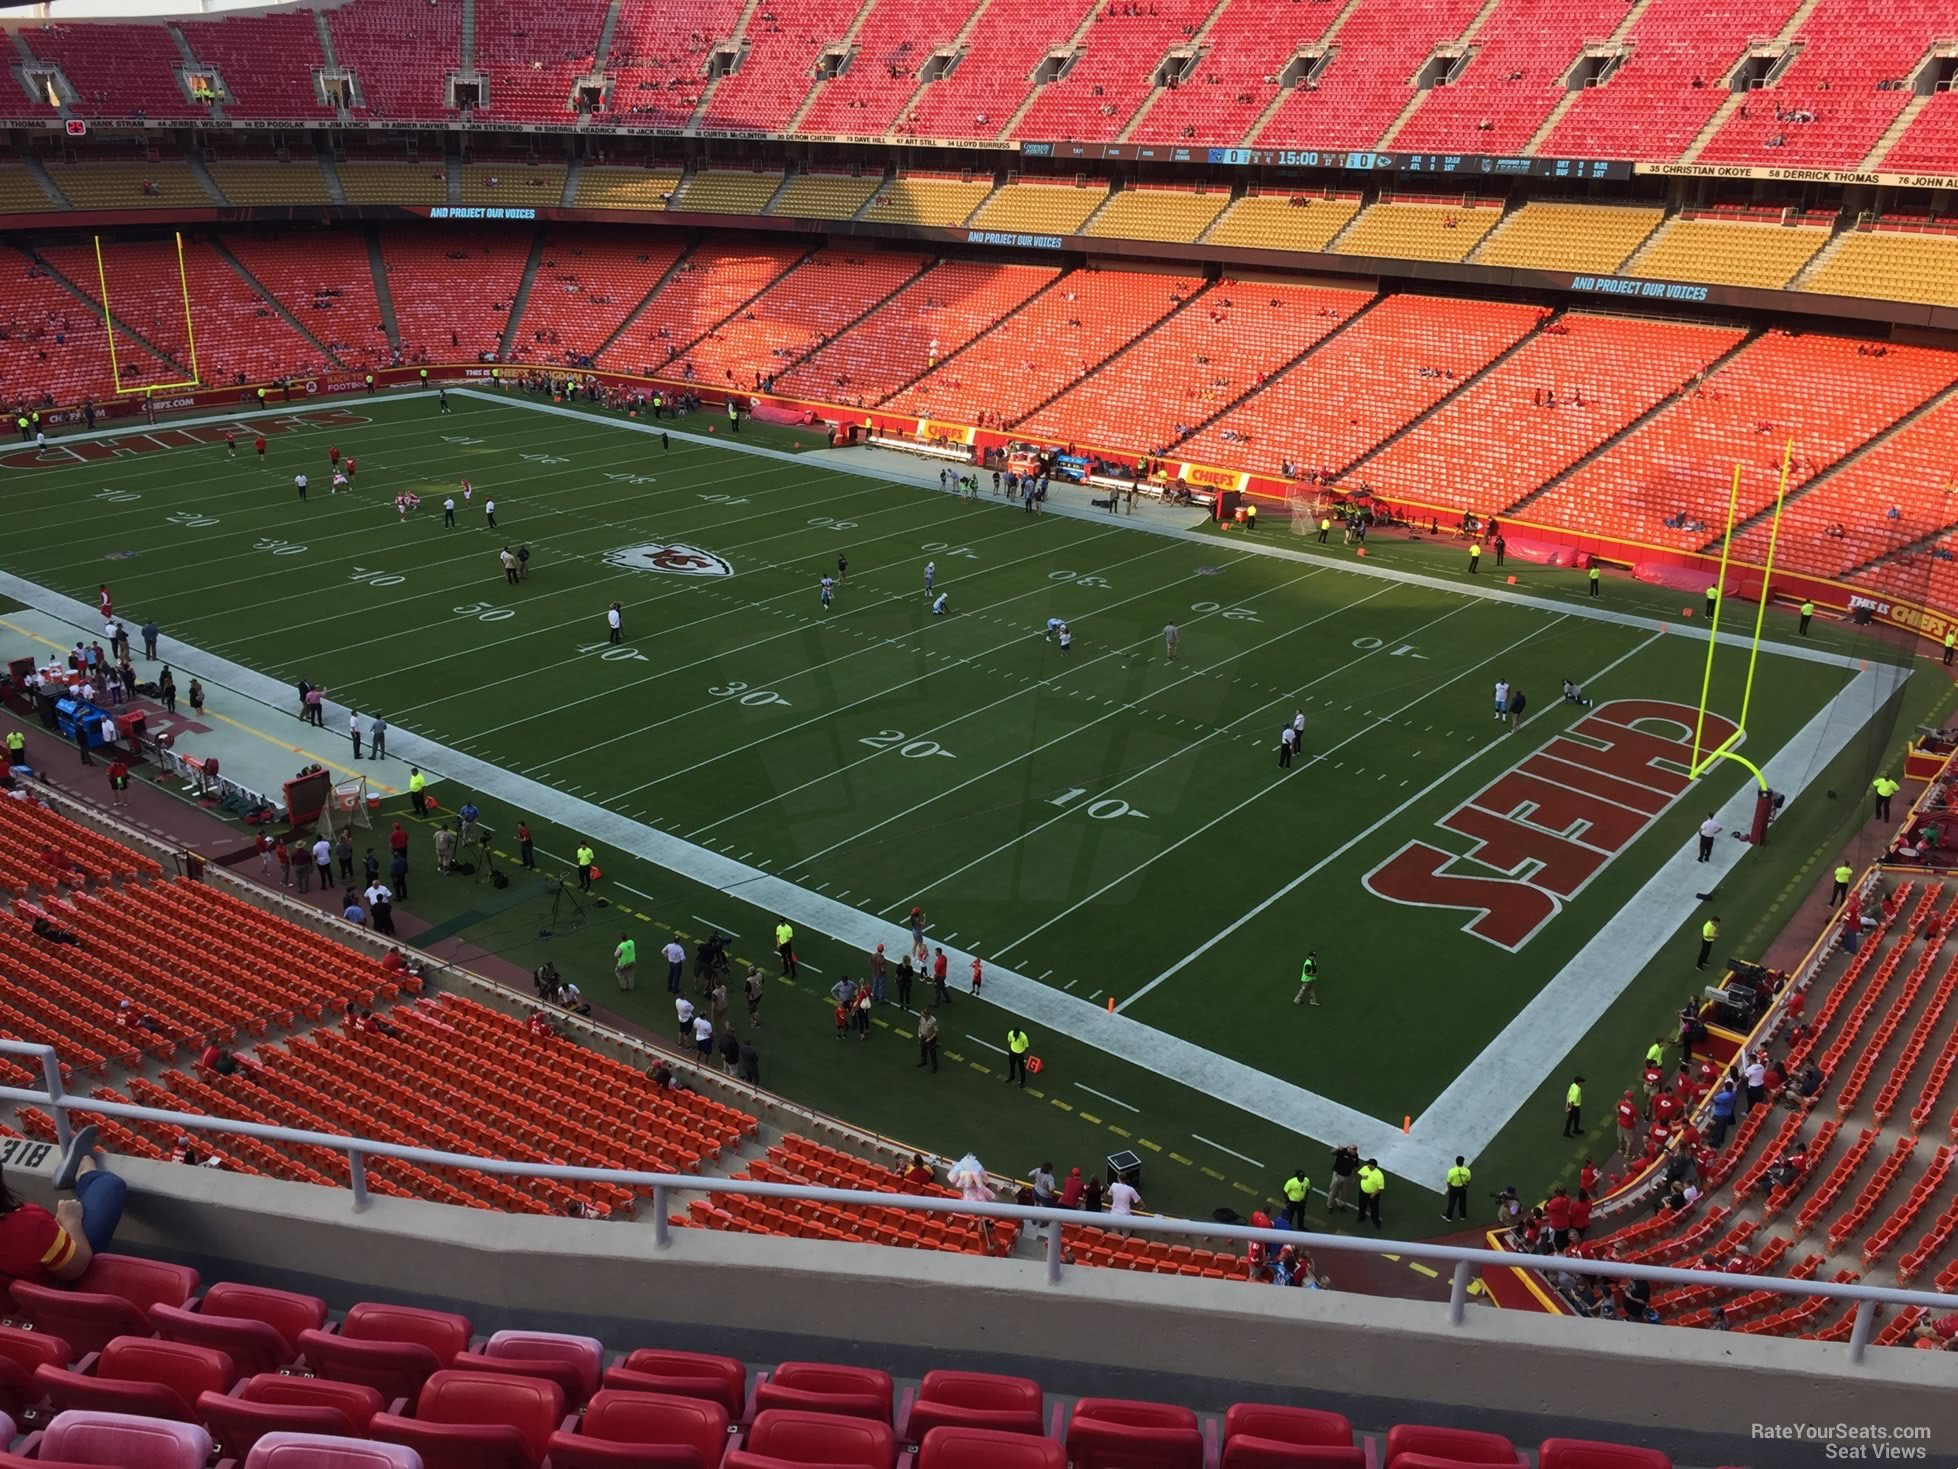 Seat View for Arrowhead Stadium Section 318, Row 7